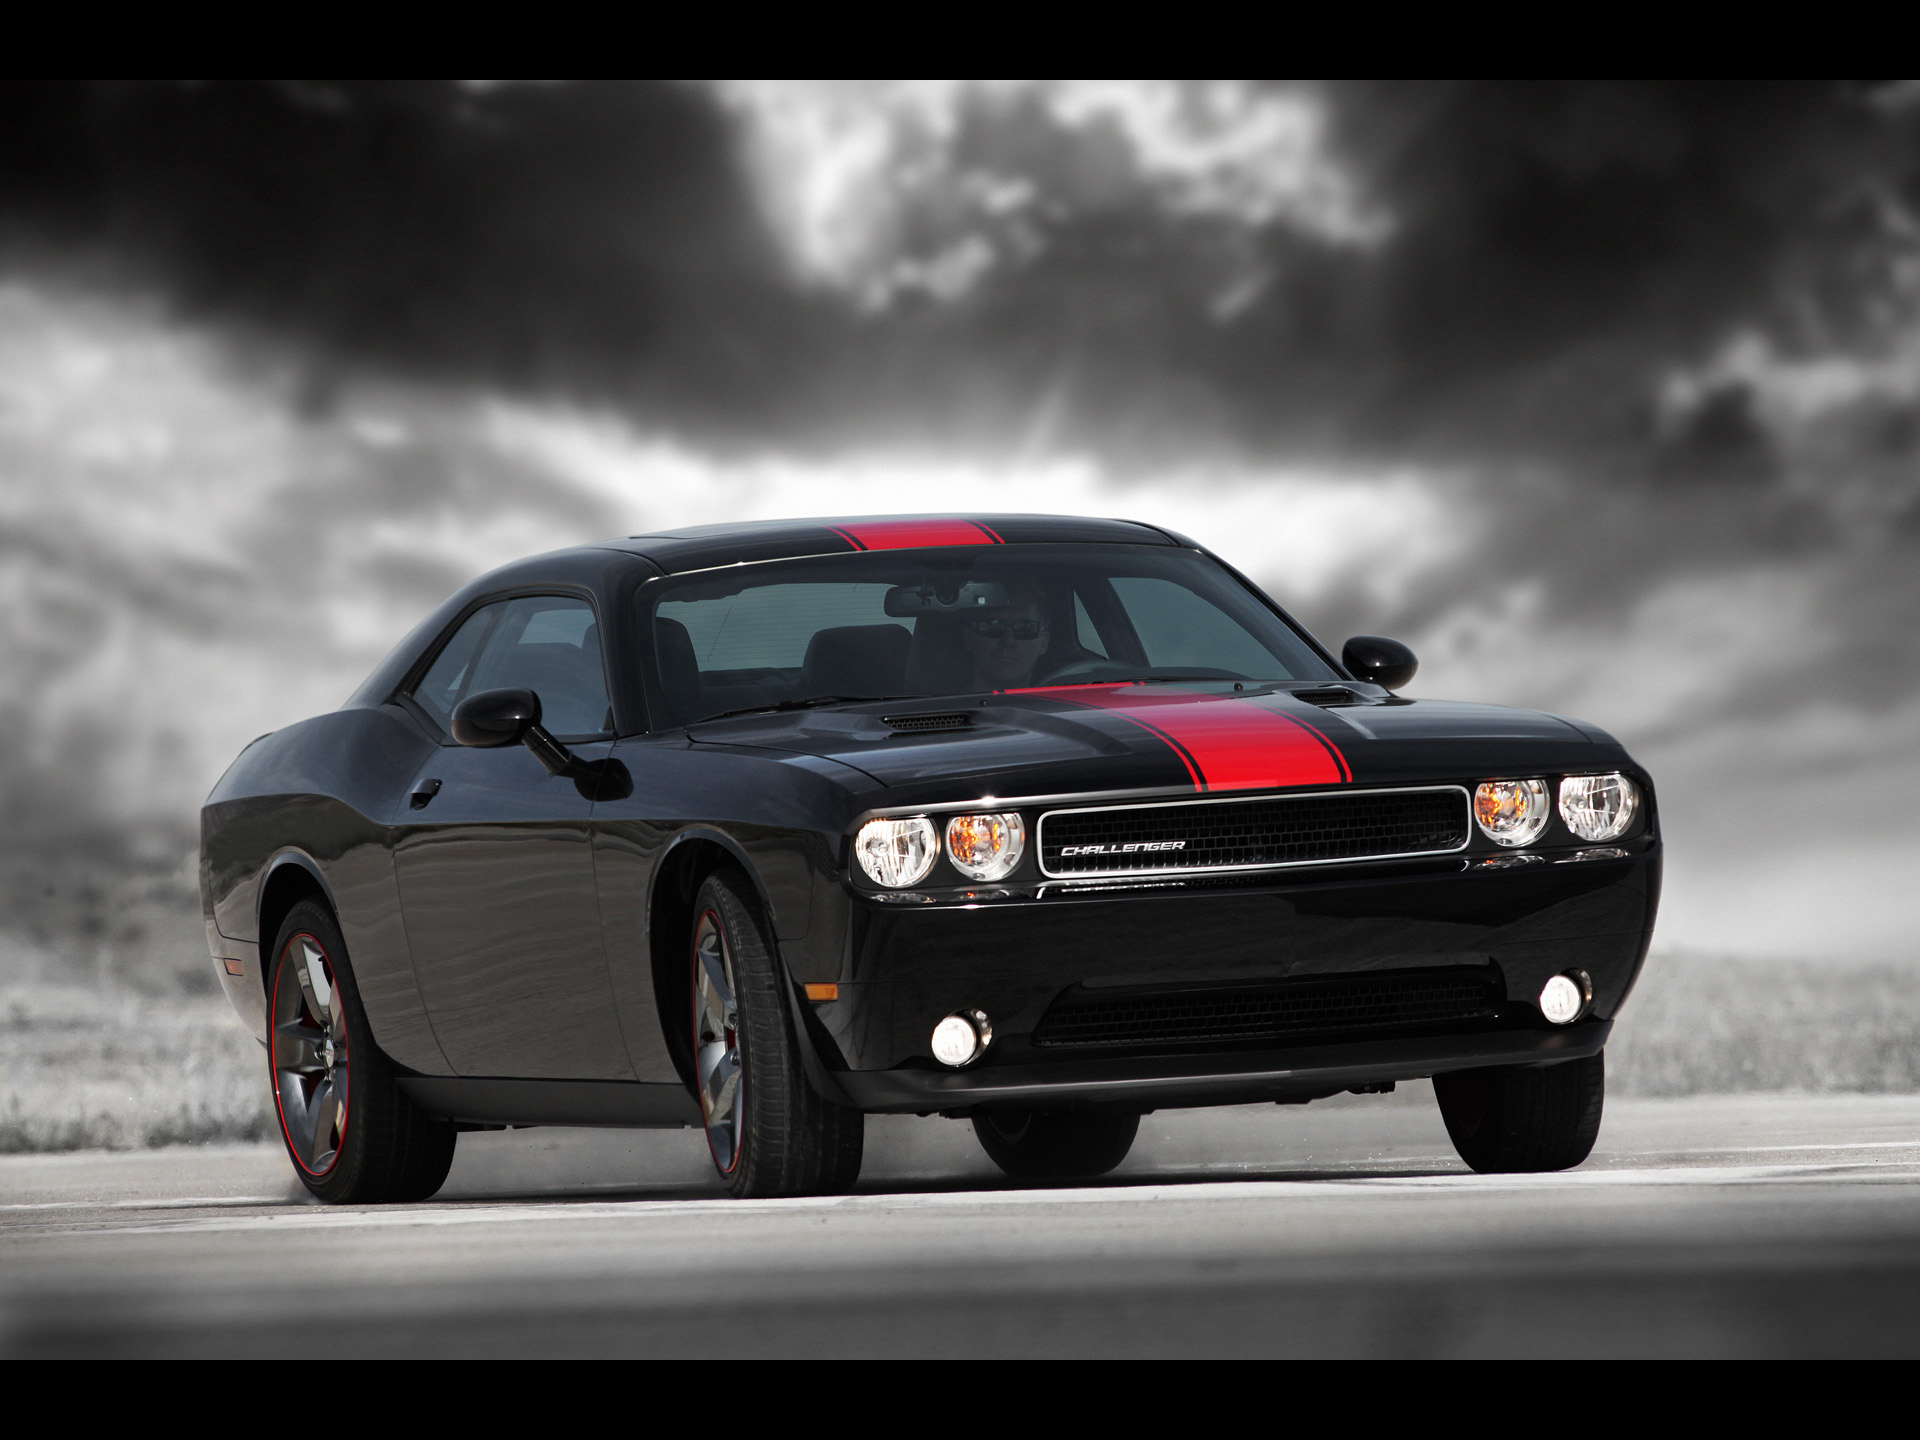 1920x1440 - Dodge Challenger Rallye Wallpapers 11